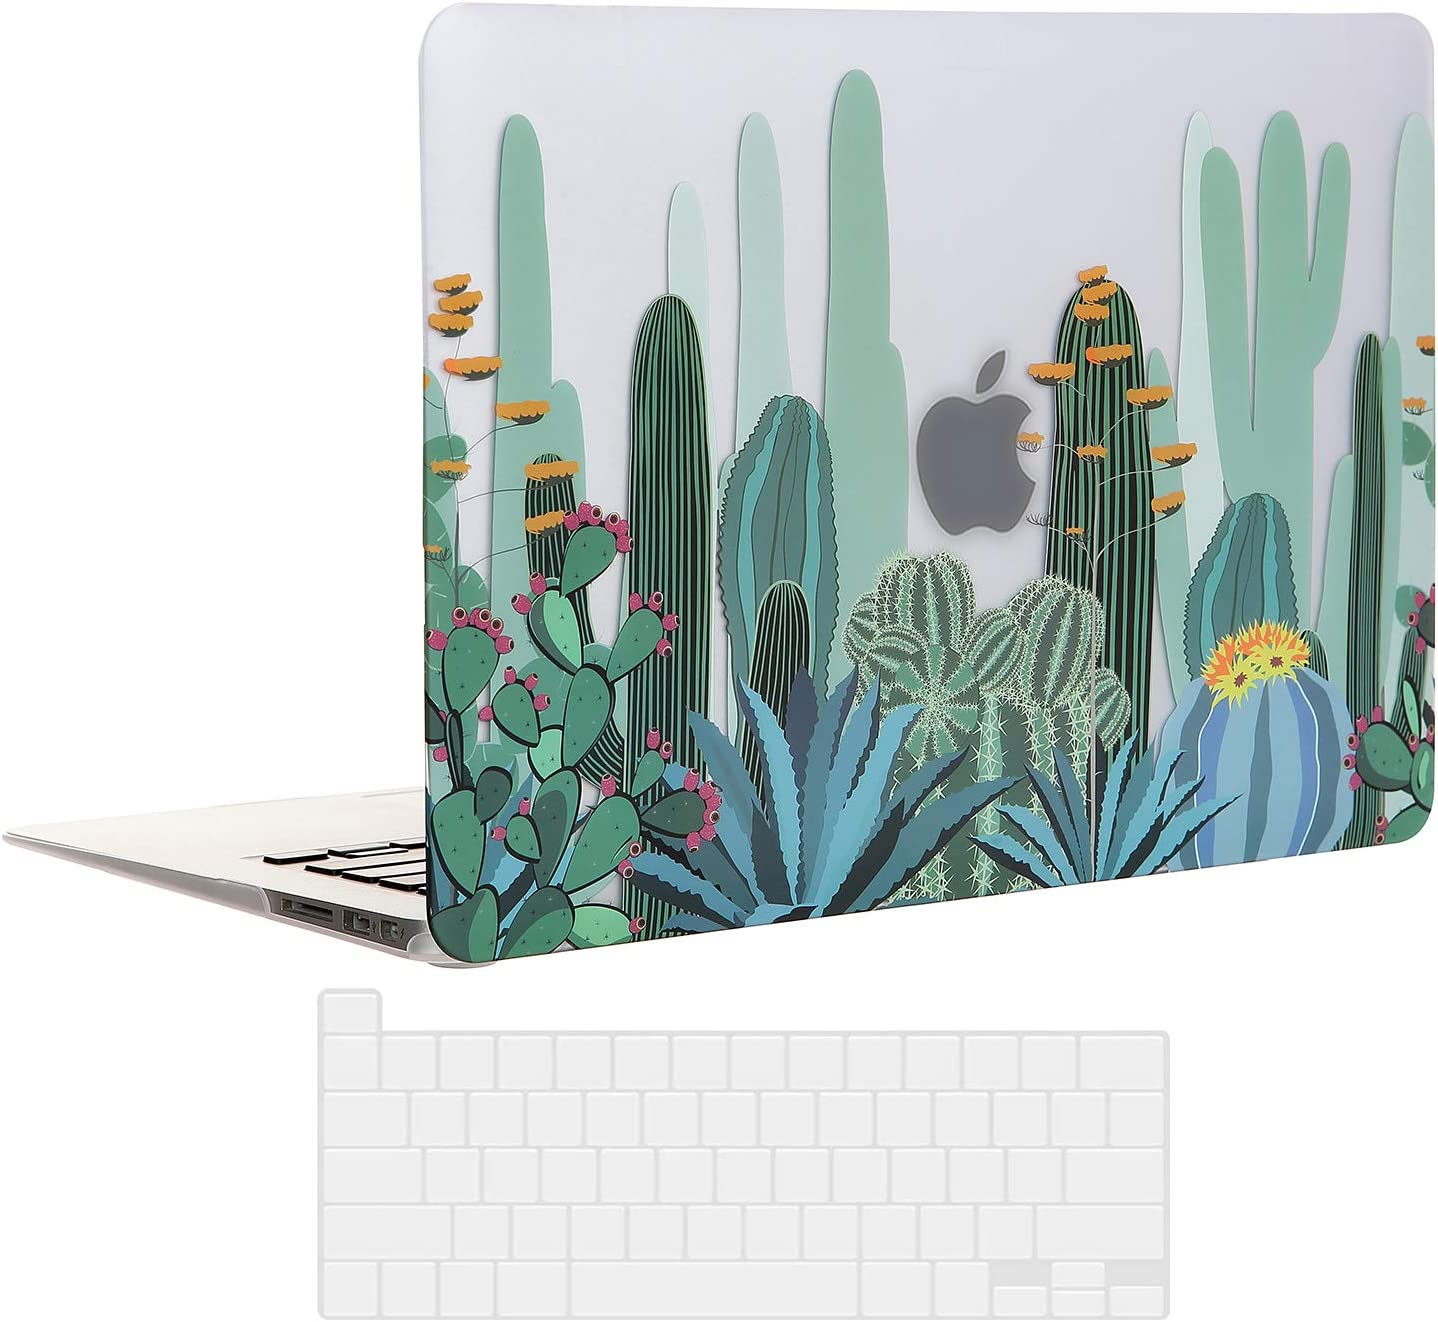 EkuaBot Cactus MacBook Pro 13 inch Case & Transparent Keyboard Cover(A2289/A2251, 2020 Release), Matt Clear Hard Shell Case Only Compatible Newest MacBook Pro 13.3